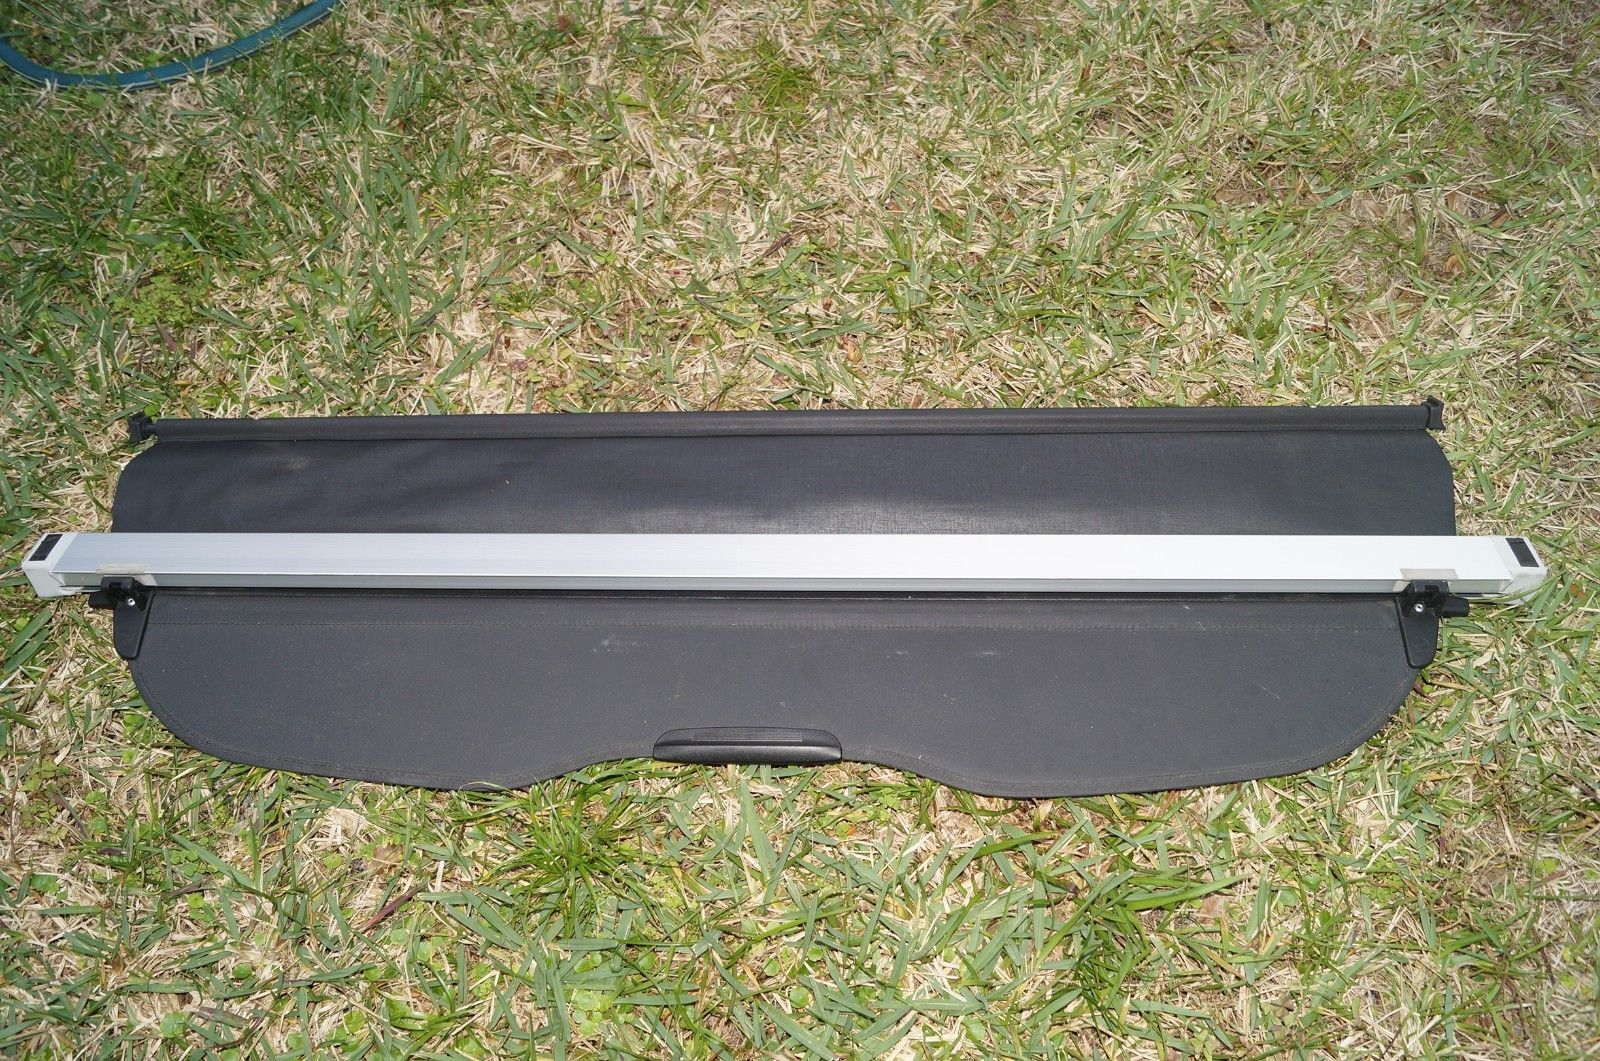 SUBARU FORESTER CARGO COVER RETRACTABLE PRIVACY SHADE a048114 SUBFORESTER